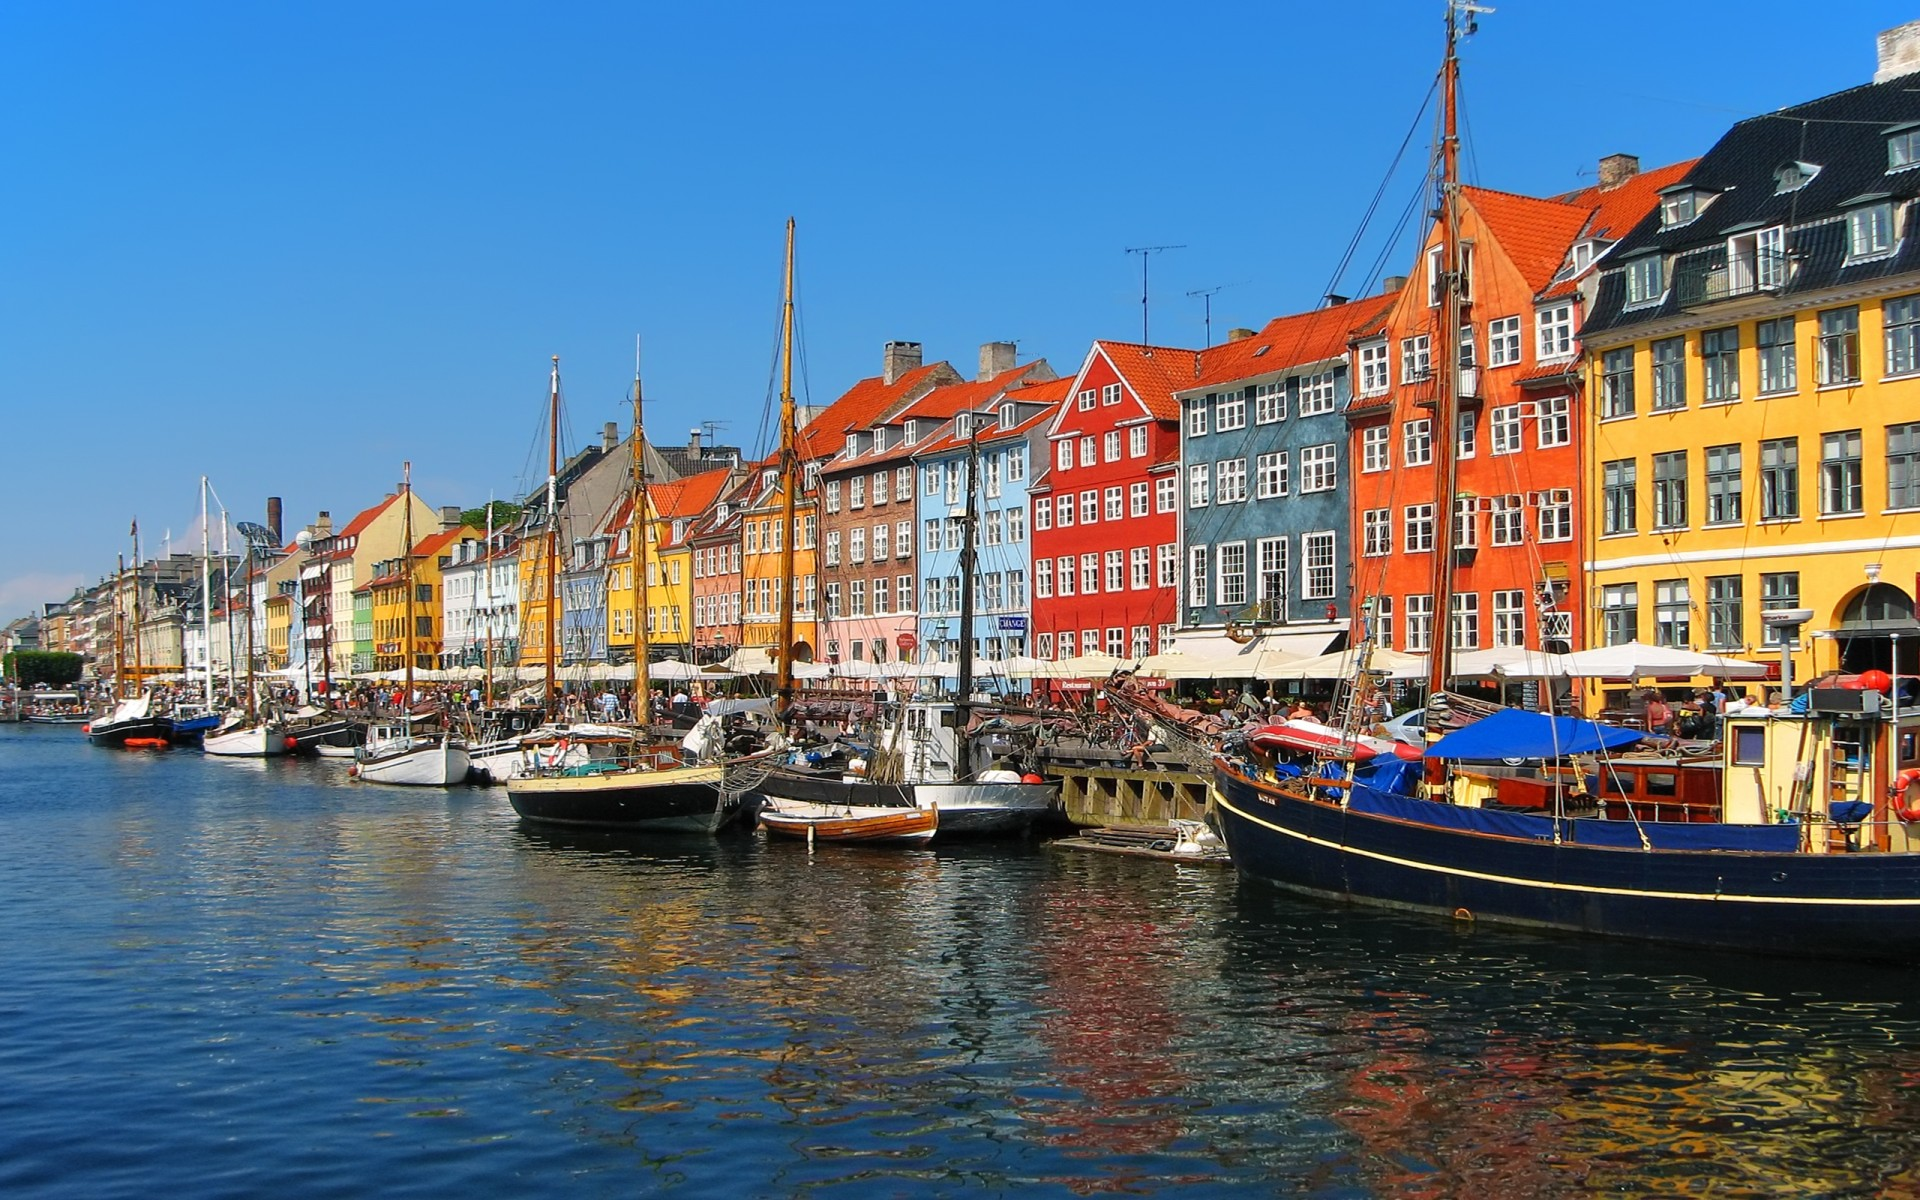 Port, voyage d'affaires à Copenhague